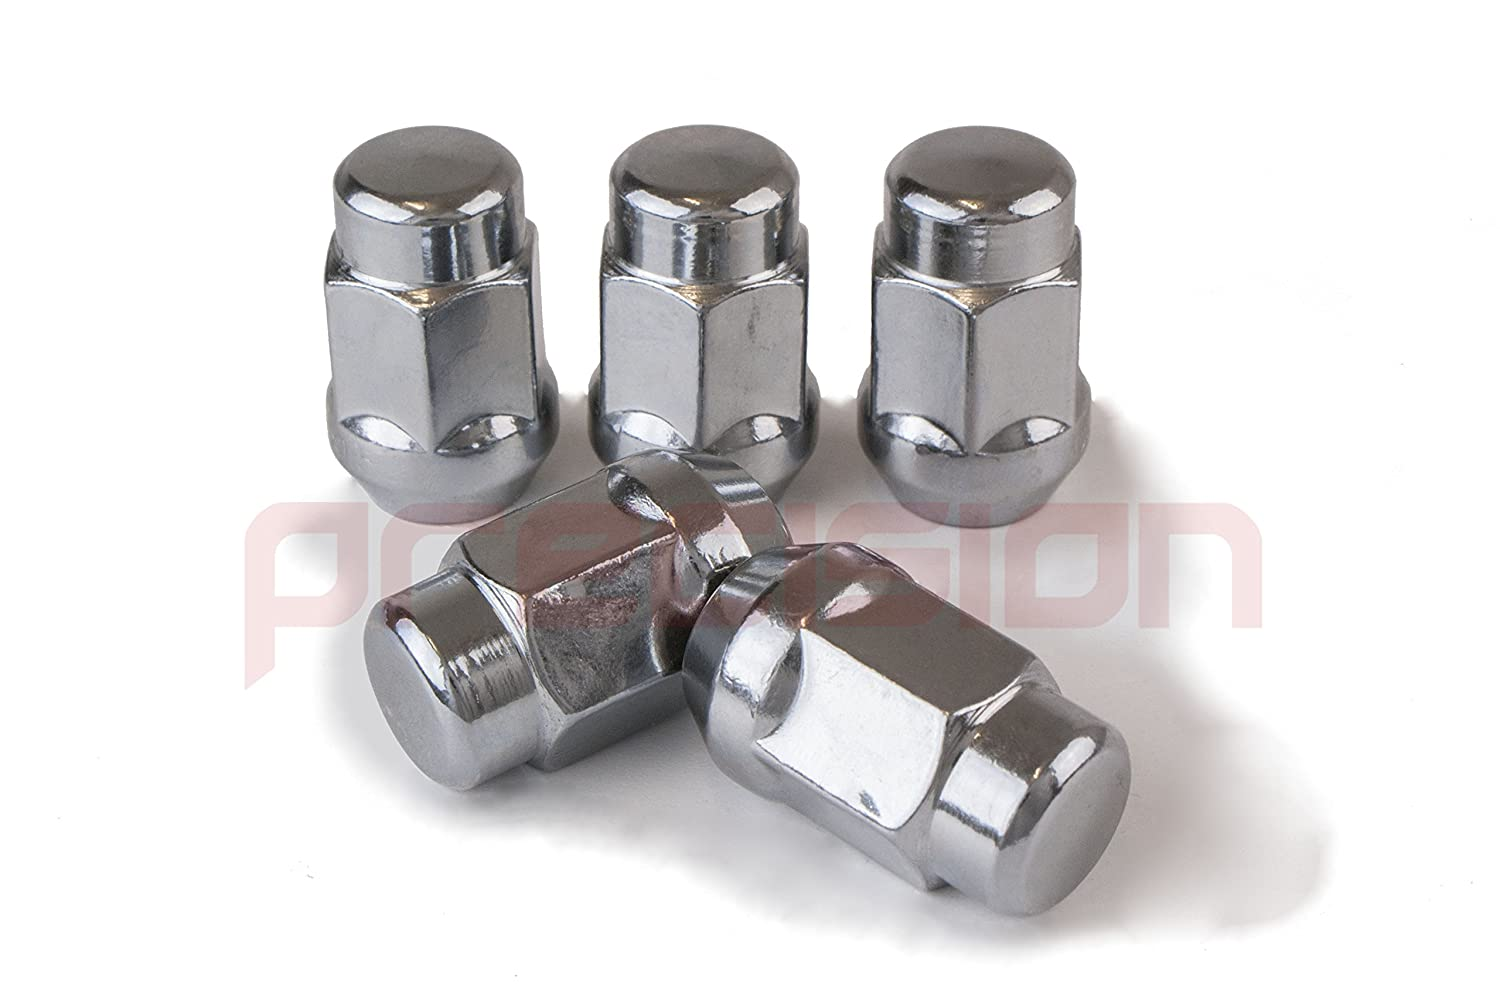 12 x Chrome Alloy Wheel Nuts and 4 x Locking Nuts for Ḟord Sierra with Aftermarket Wheels Part No 12NM10+N10551